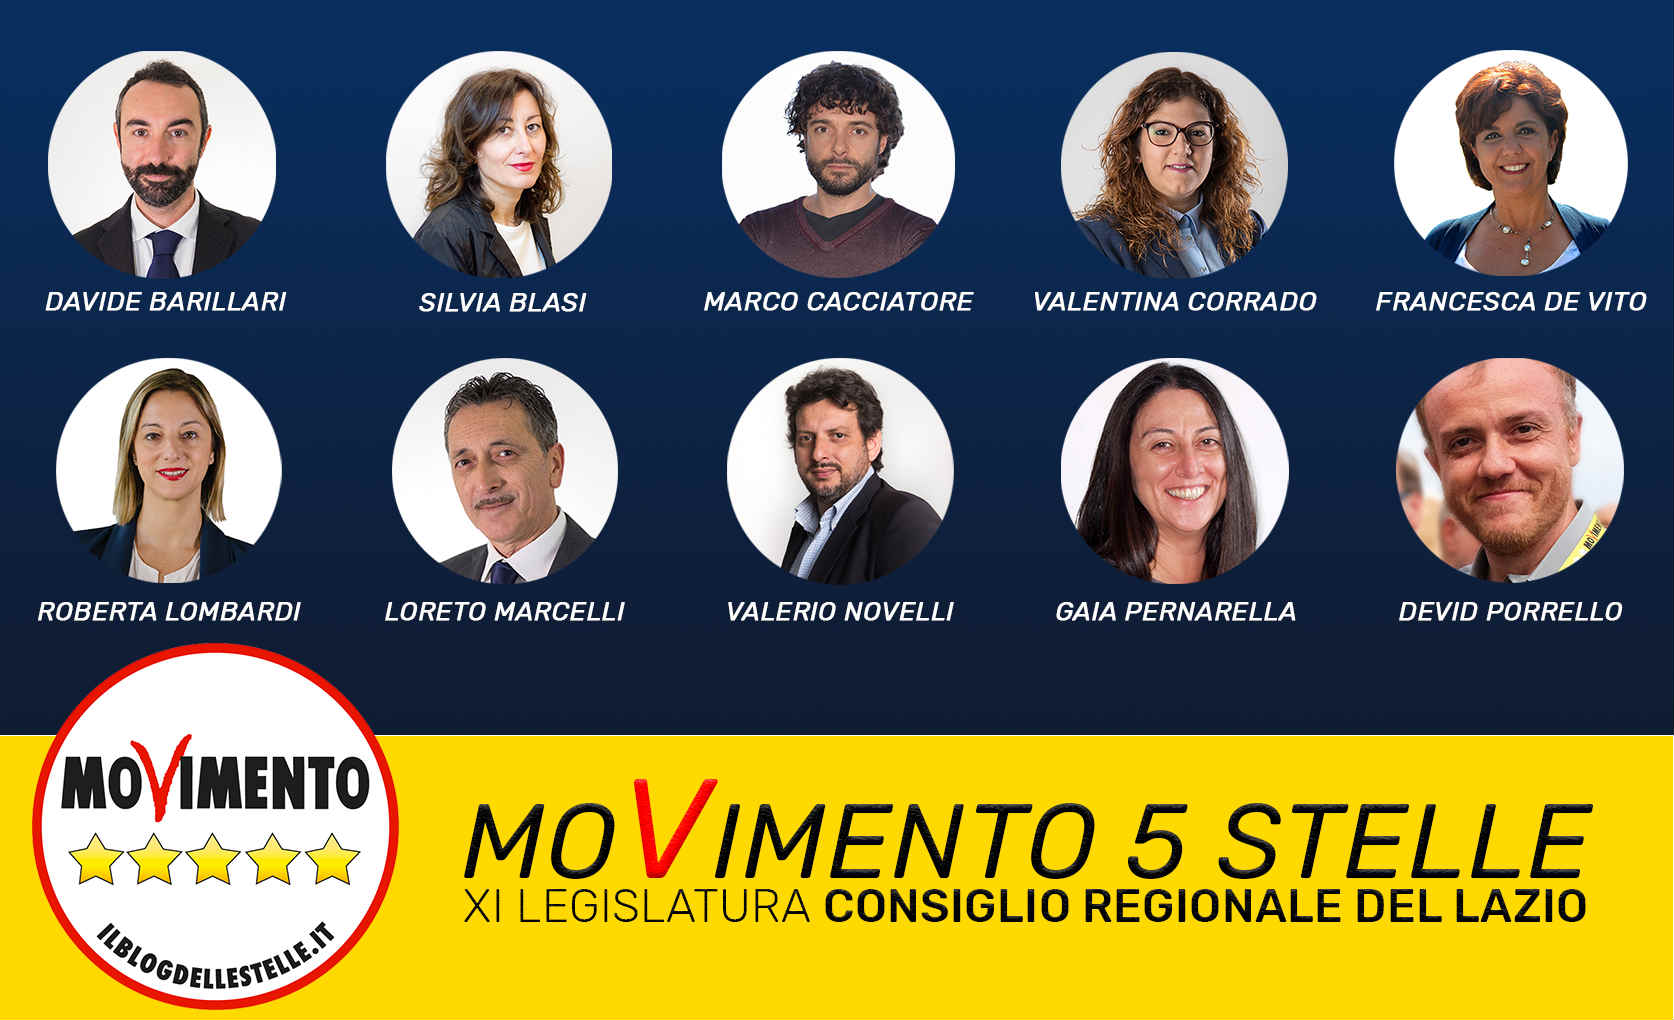 10 nuovi portavoce del movimento 5 stelle in regione lazio for Esponenti movimento 5 stelle